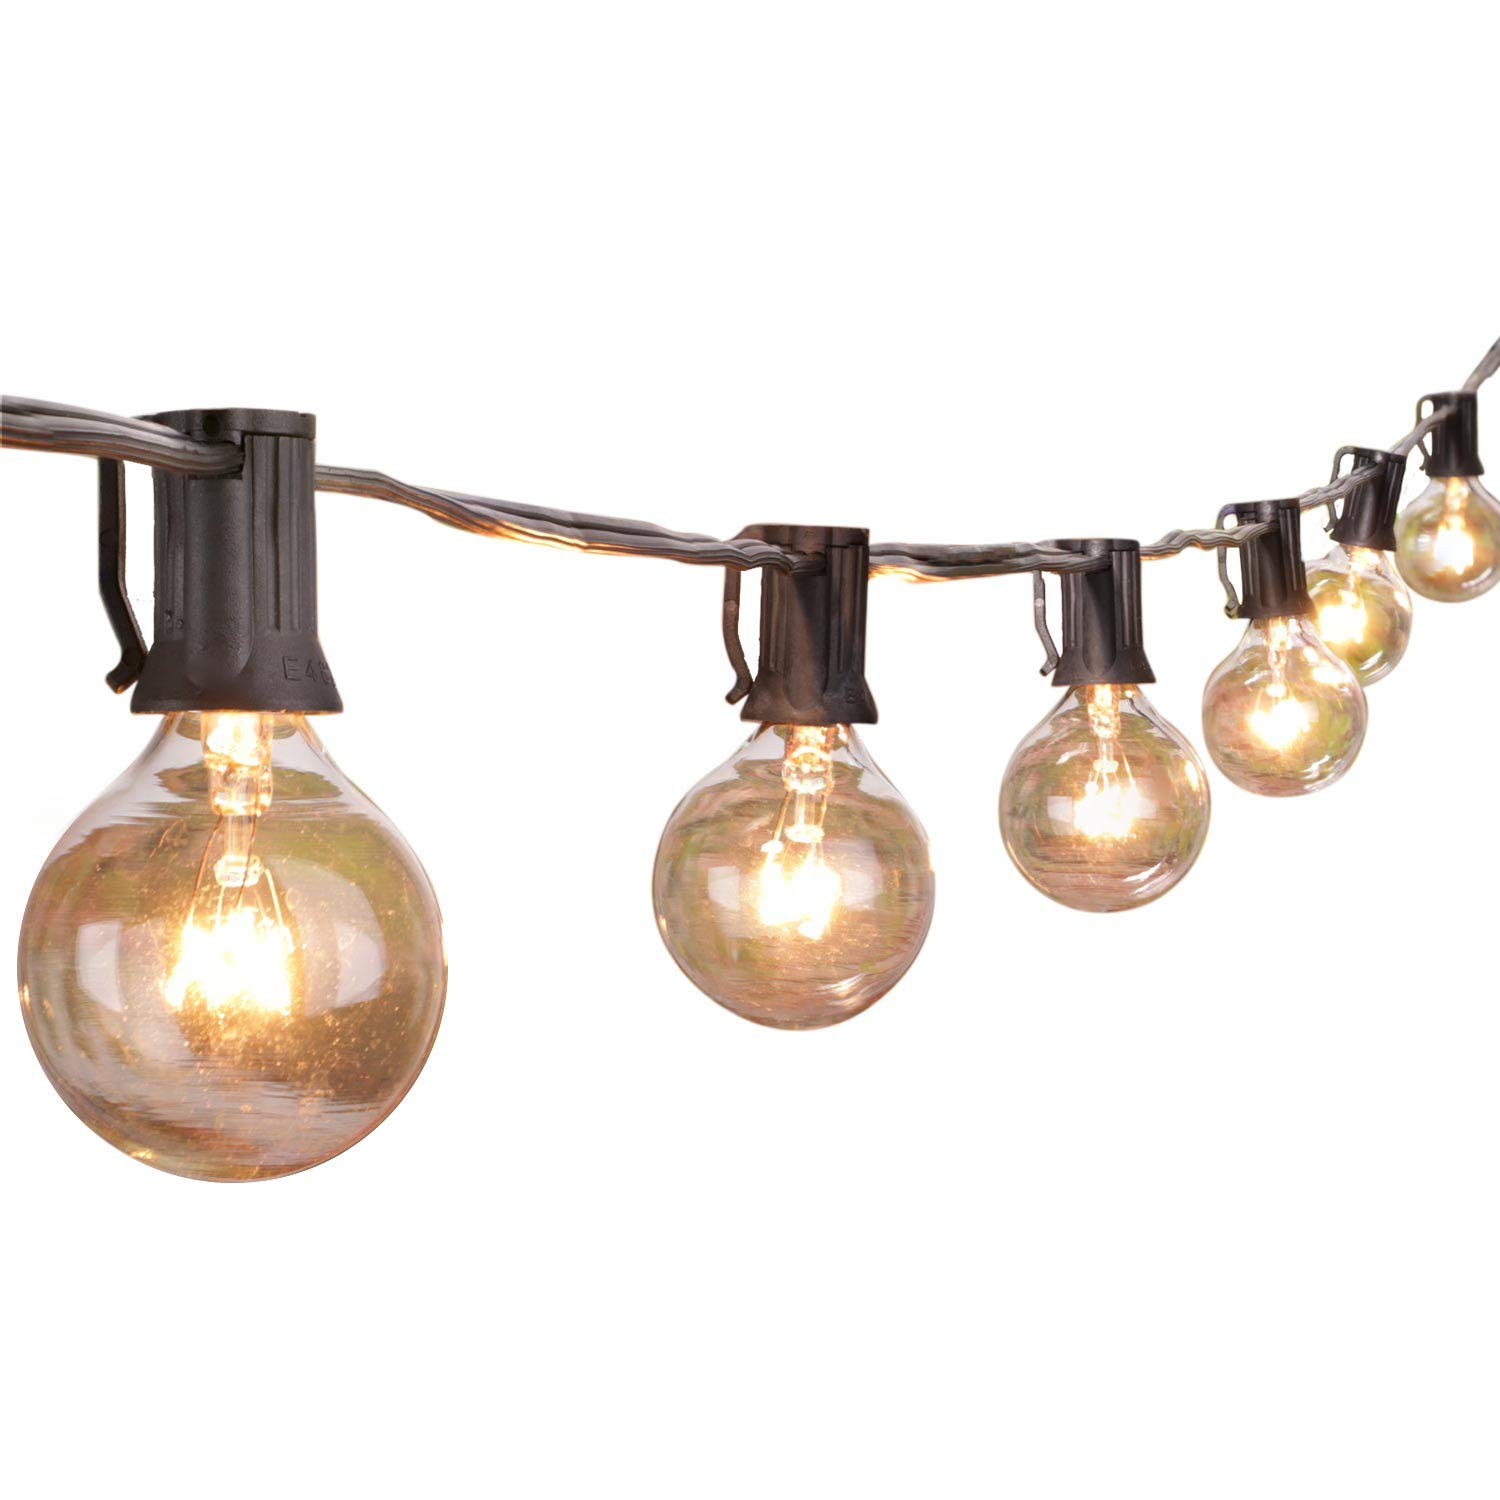 Globe String Lights with G40 Clear Bulbs- UL Listed for Commercial Use, Retro Indoor/Outdoor 100Ft String Lights for Patio Backyard Garden Porch Pergola Market Bistro Umbrella Tents Decks, Black by Brightown